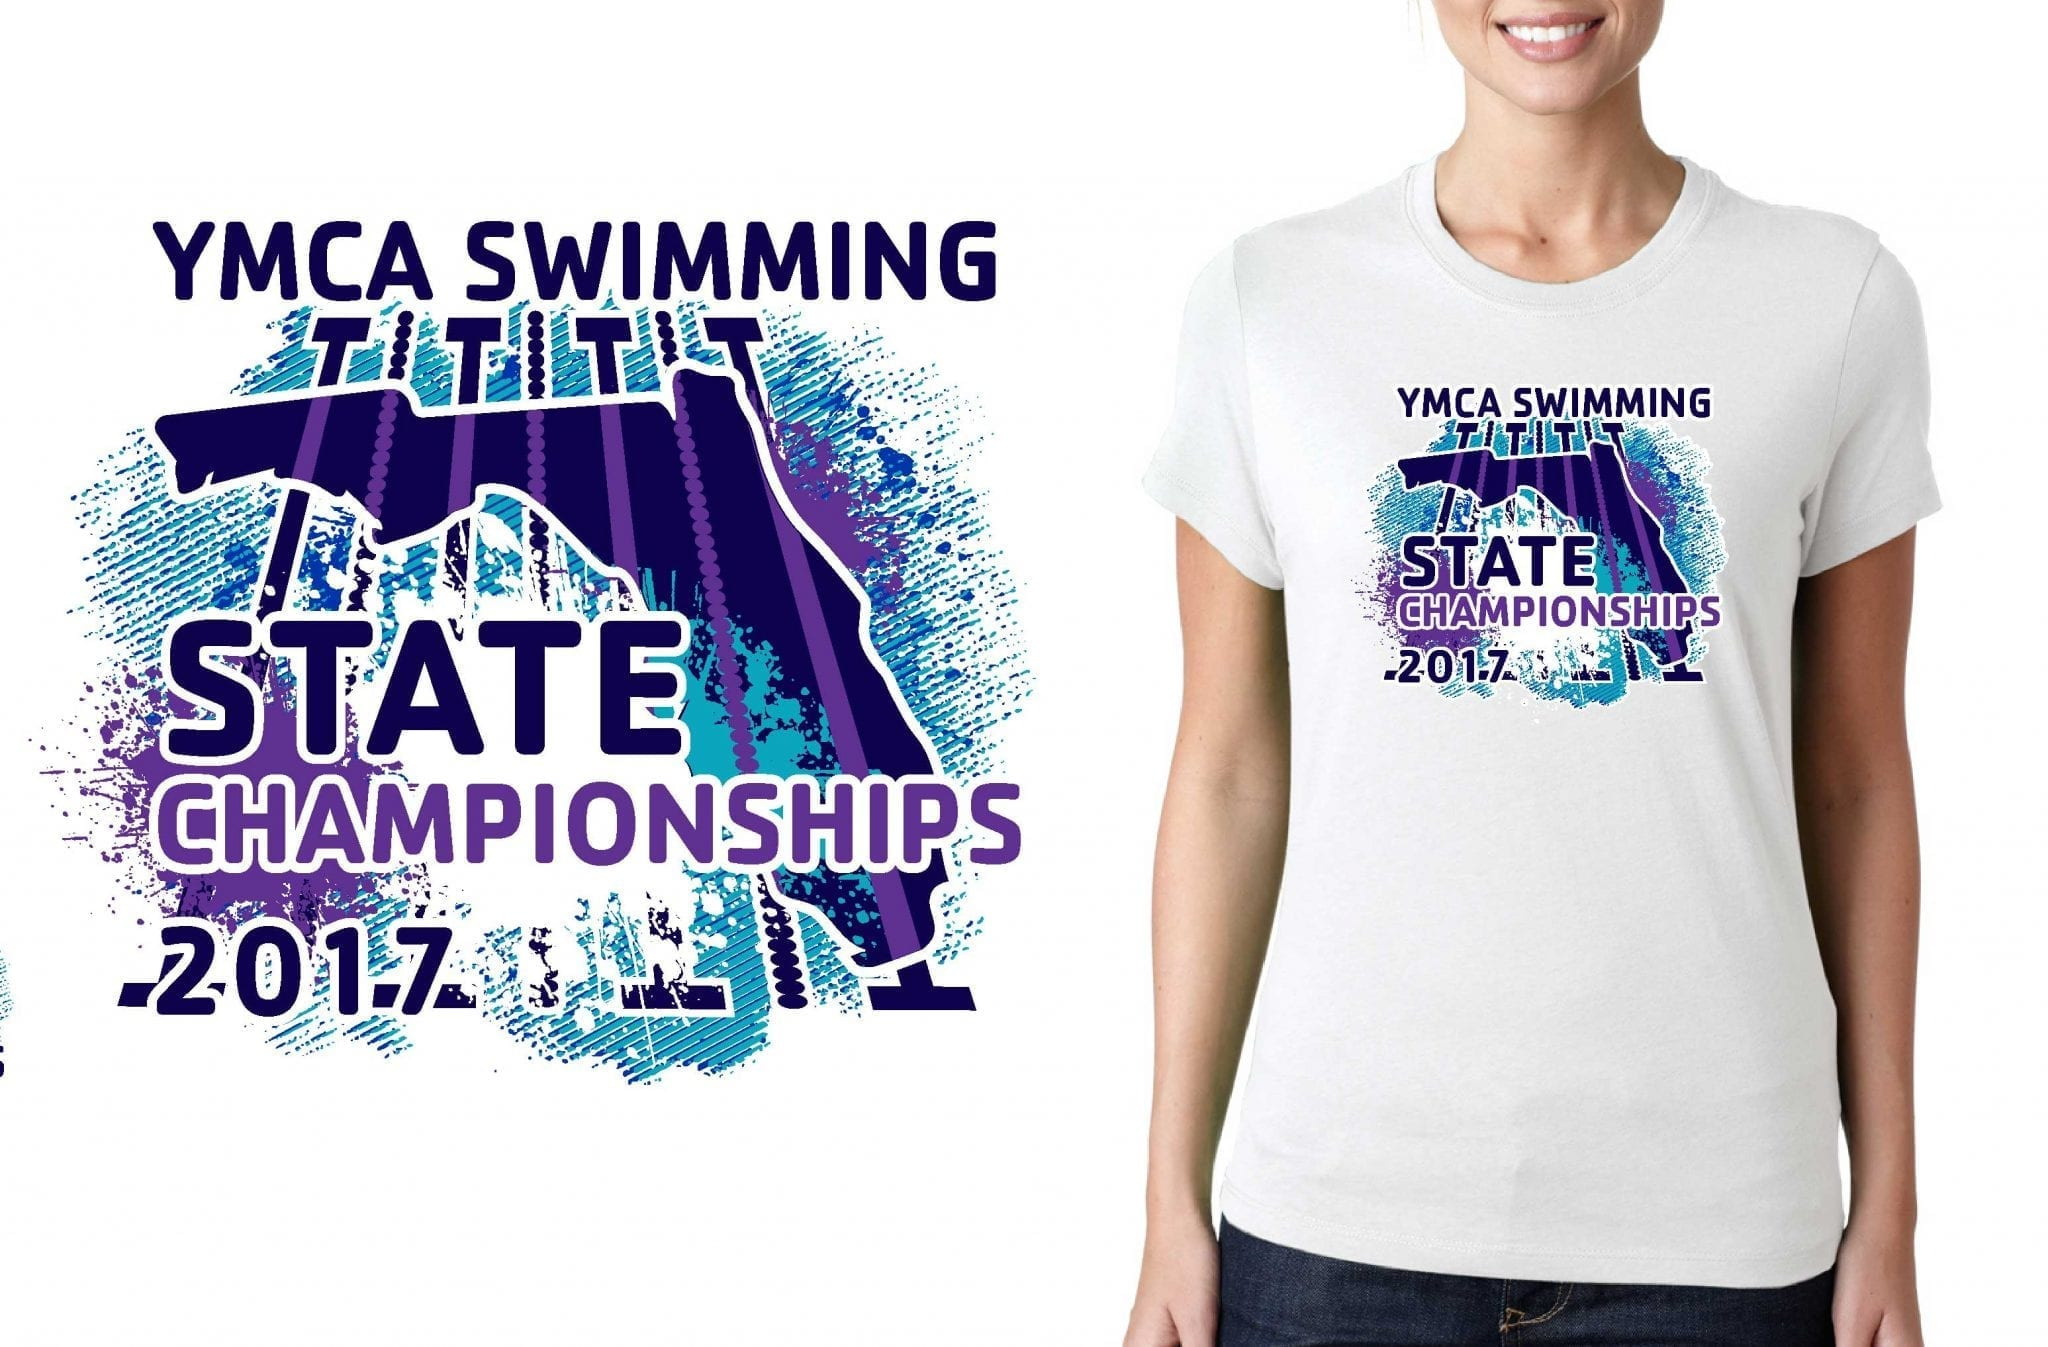 SWIMMING T SHIRT LOGO DESIGN YMCA-Swimming-State-Championships BY UrArtStudio